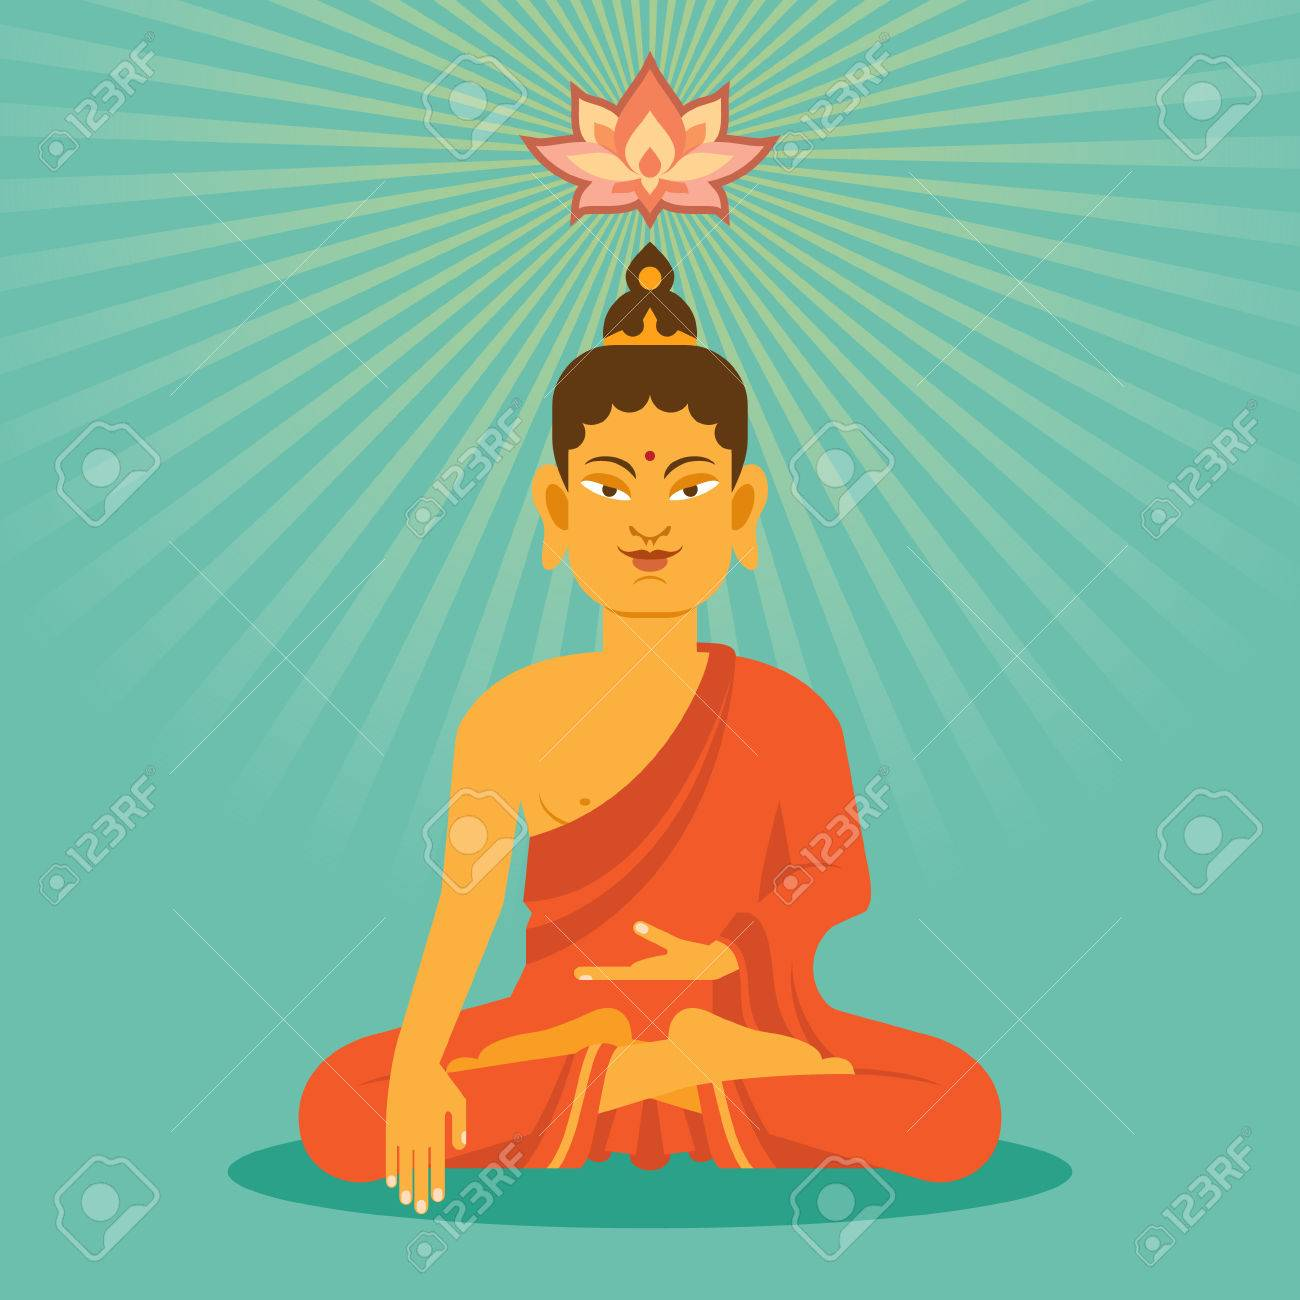 Sitting And Meditation Buddha With Lotus Flower In Flat Style